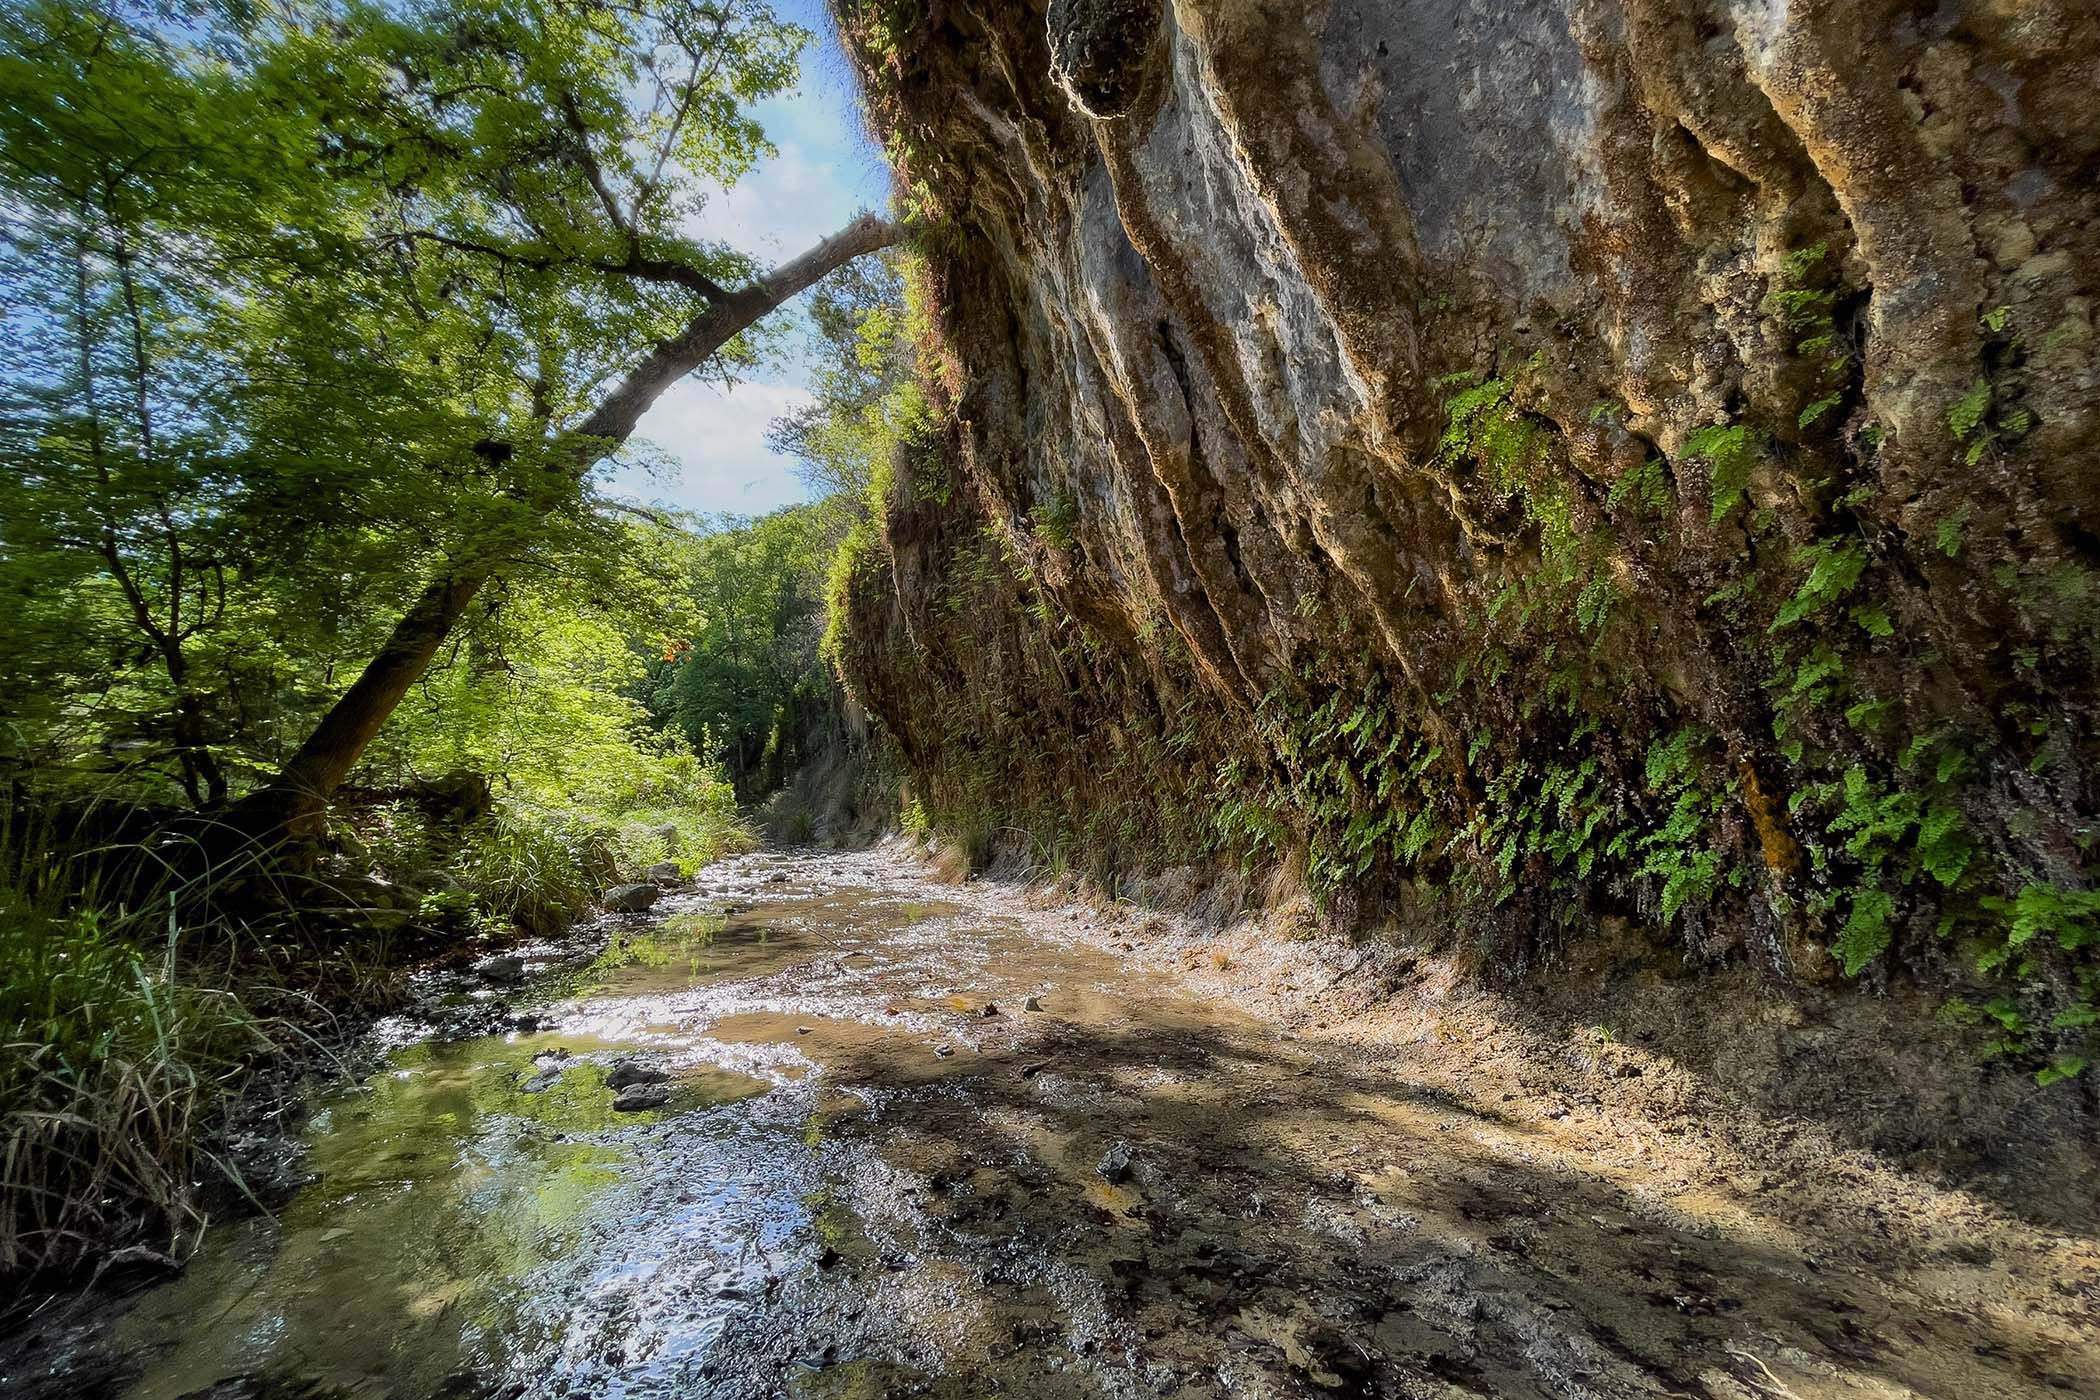 The Grotto - a limestone bluff overhang along a small stream in Lost Maples State Natural Area in the Hill Country of Texas. © Lang Elliott